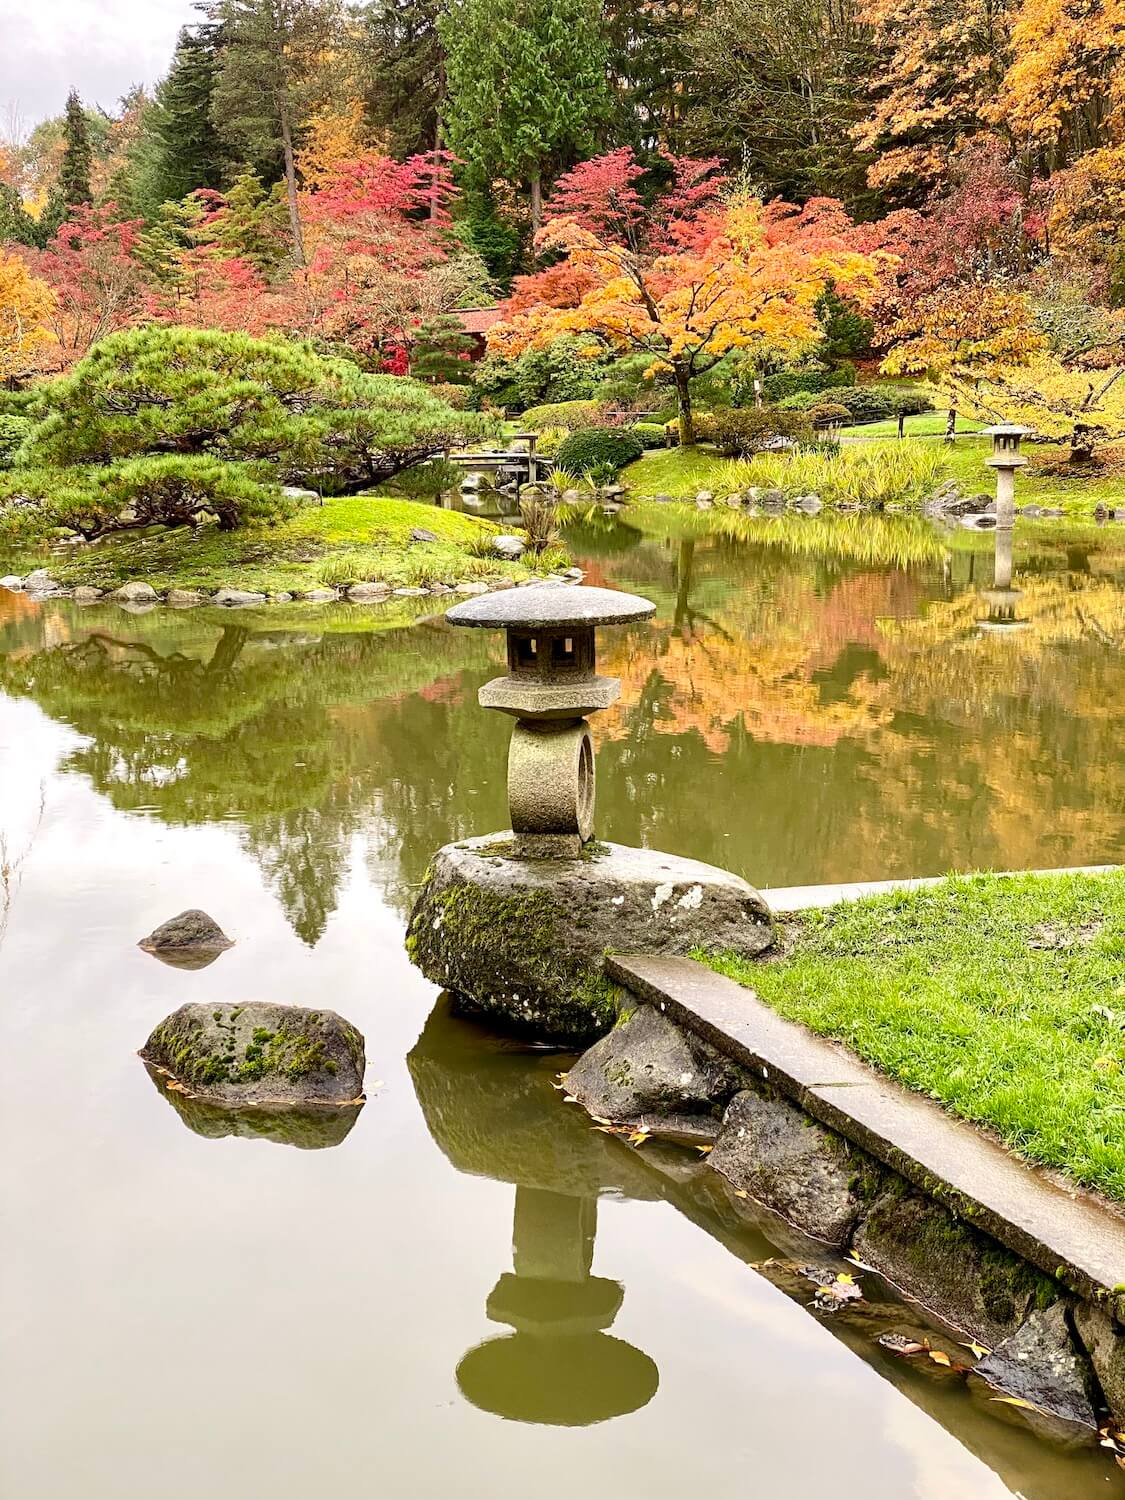 The Seattle Japanese Garden is perhaps one of the most inspiring in the city, with a large calm pond with lanterns casting shadows on the water.  The maple trees are changing colors with their leaves.